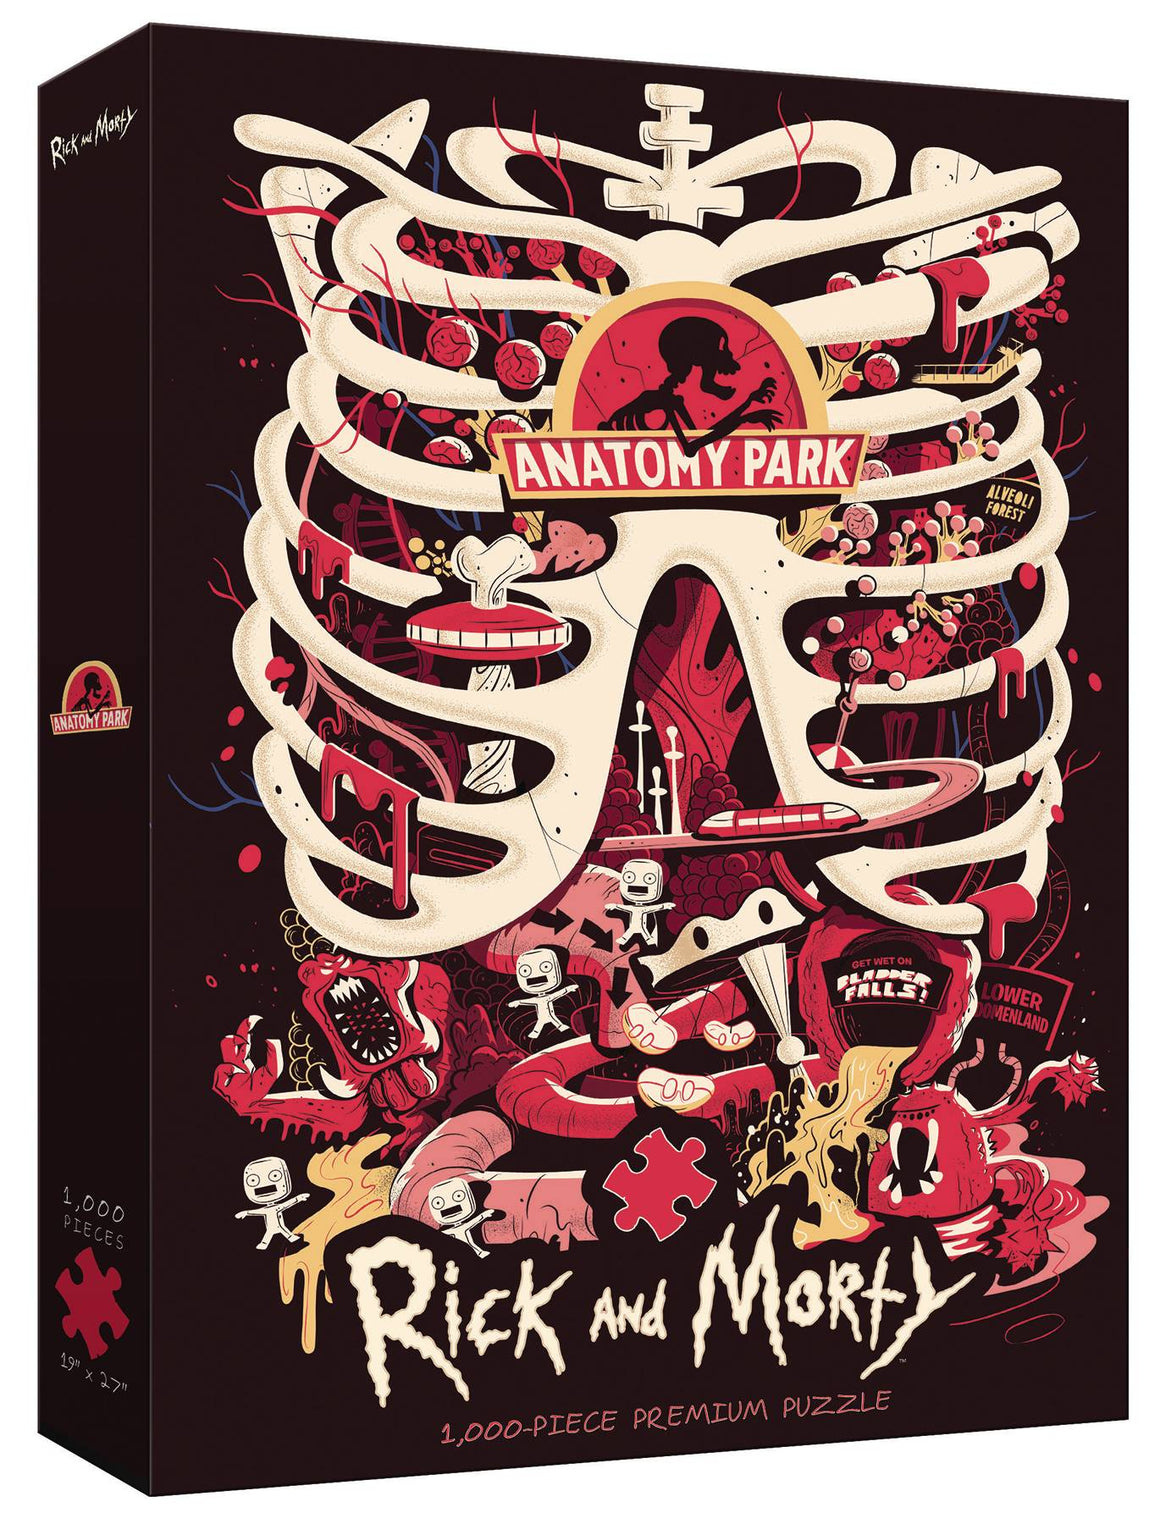 RICK AND MORTY ANATOMY PARK PUZZLE